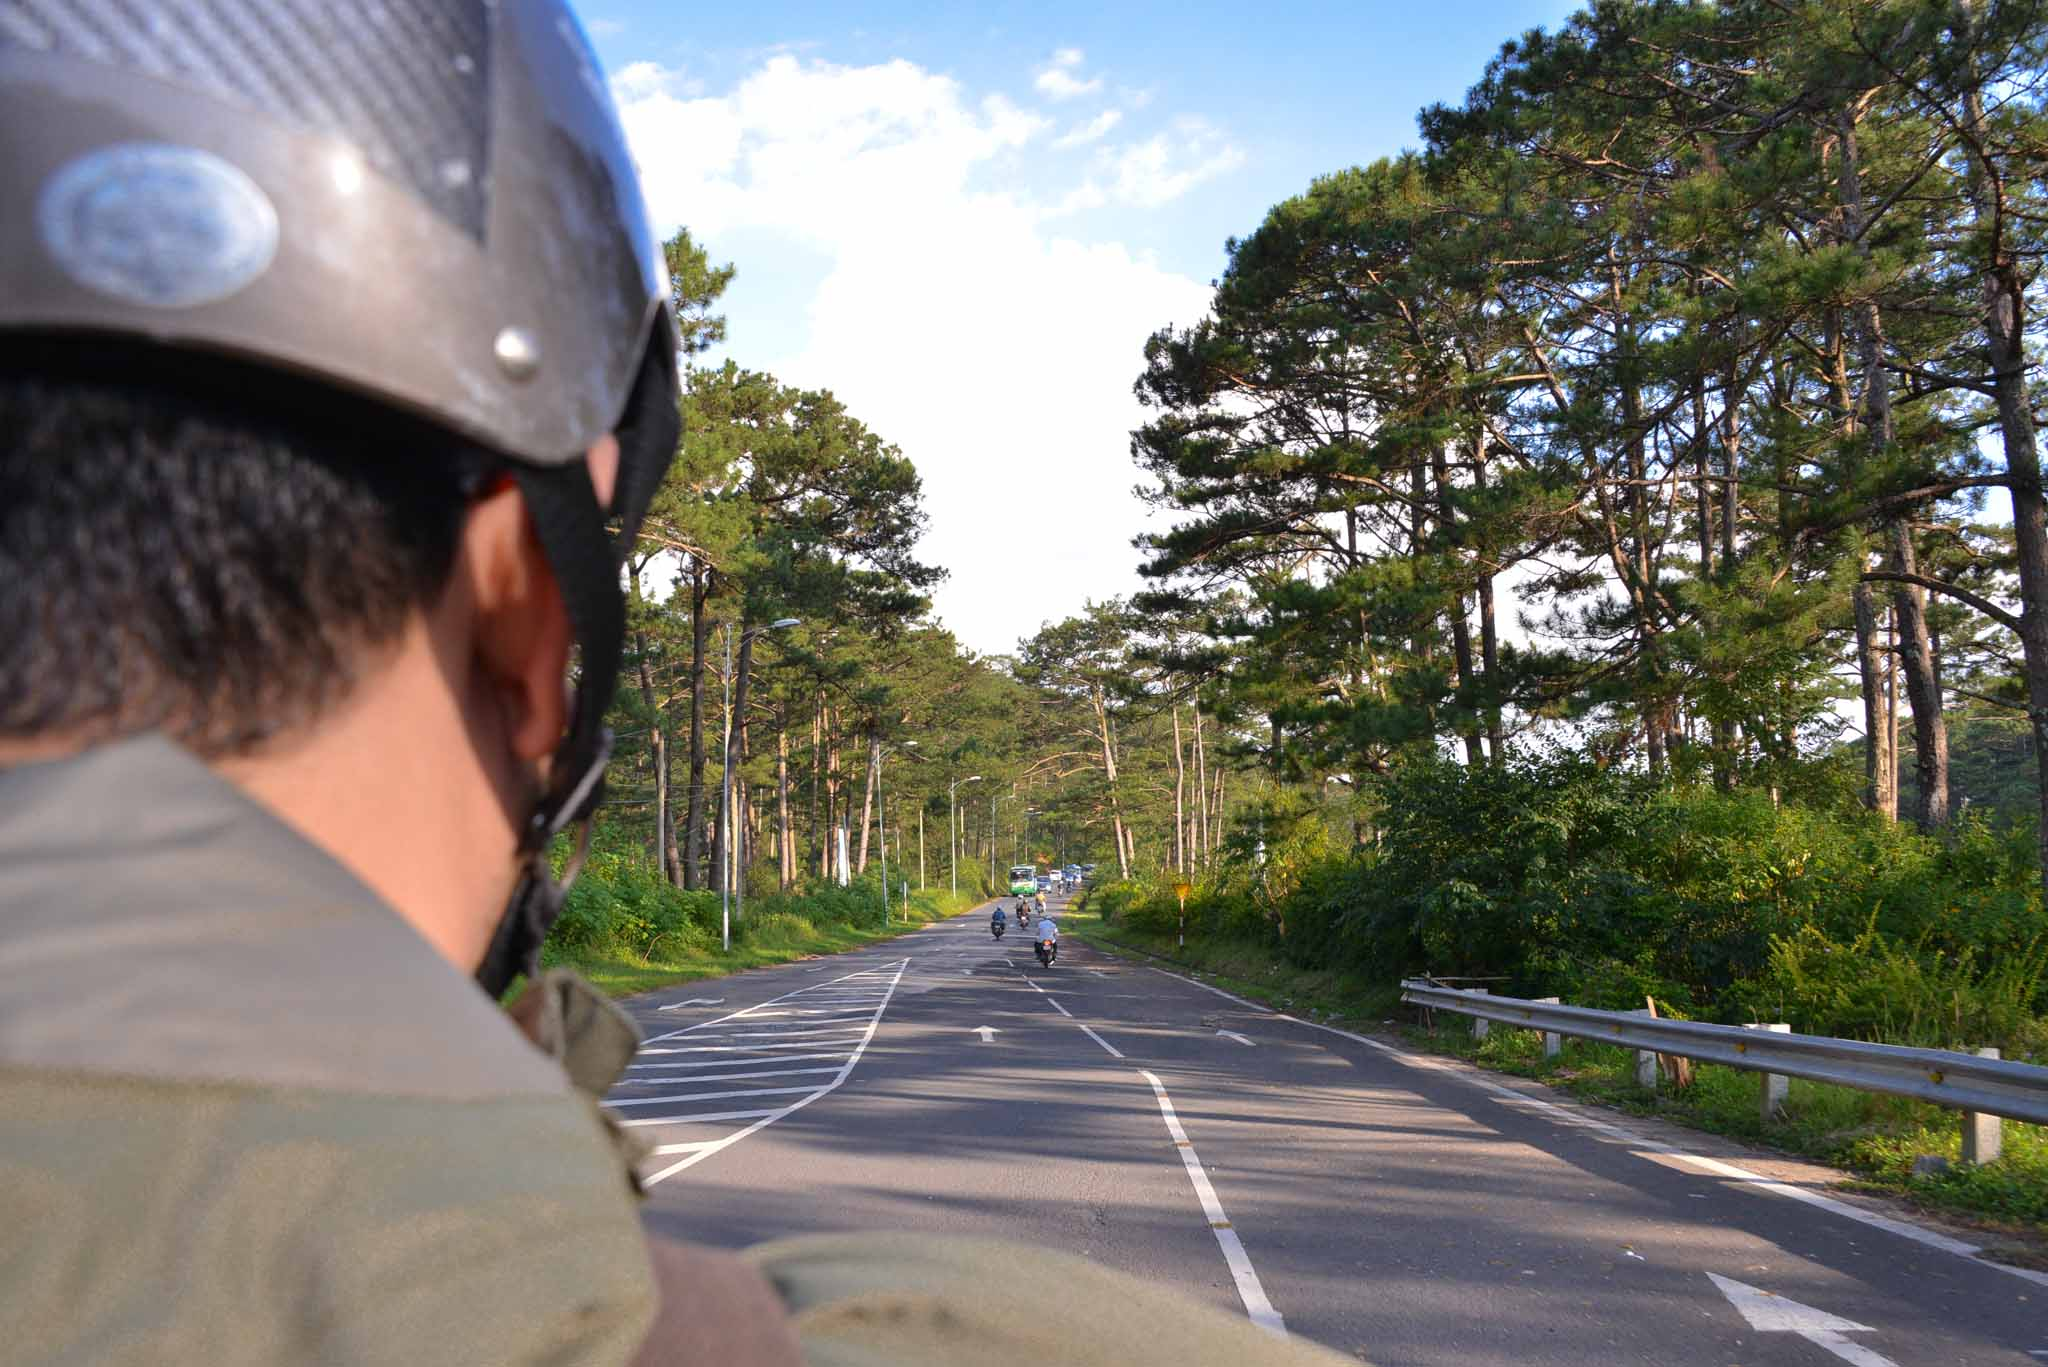 Driving through pine trees in Da Lat Vietnam